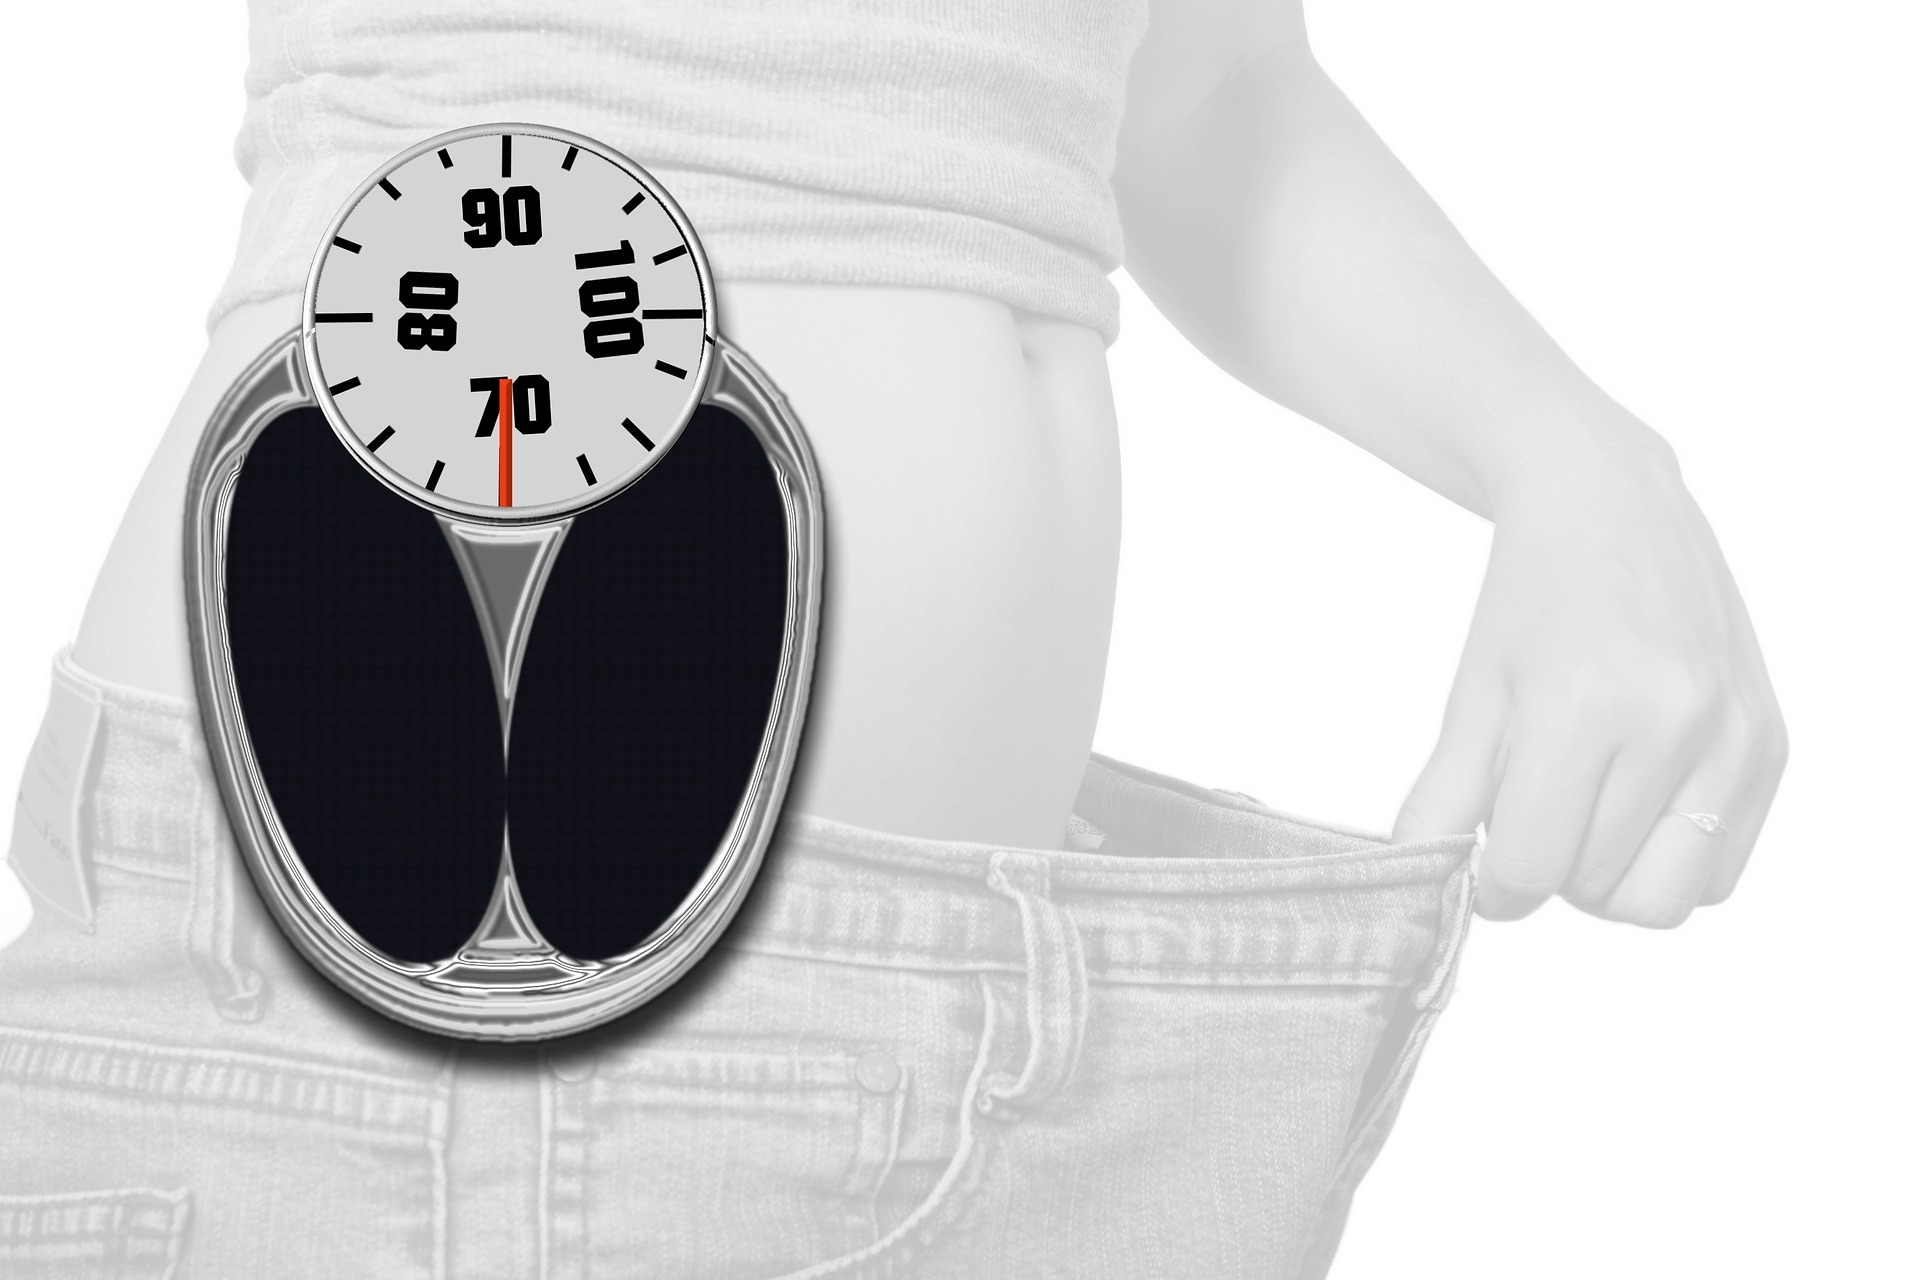 coronavirus obesity risk-The reason you need to lose weight